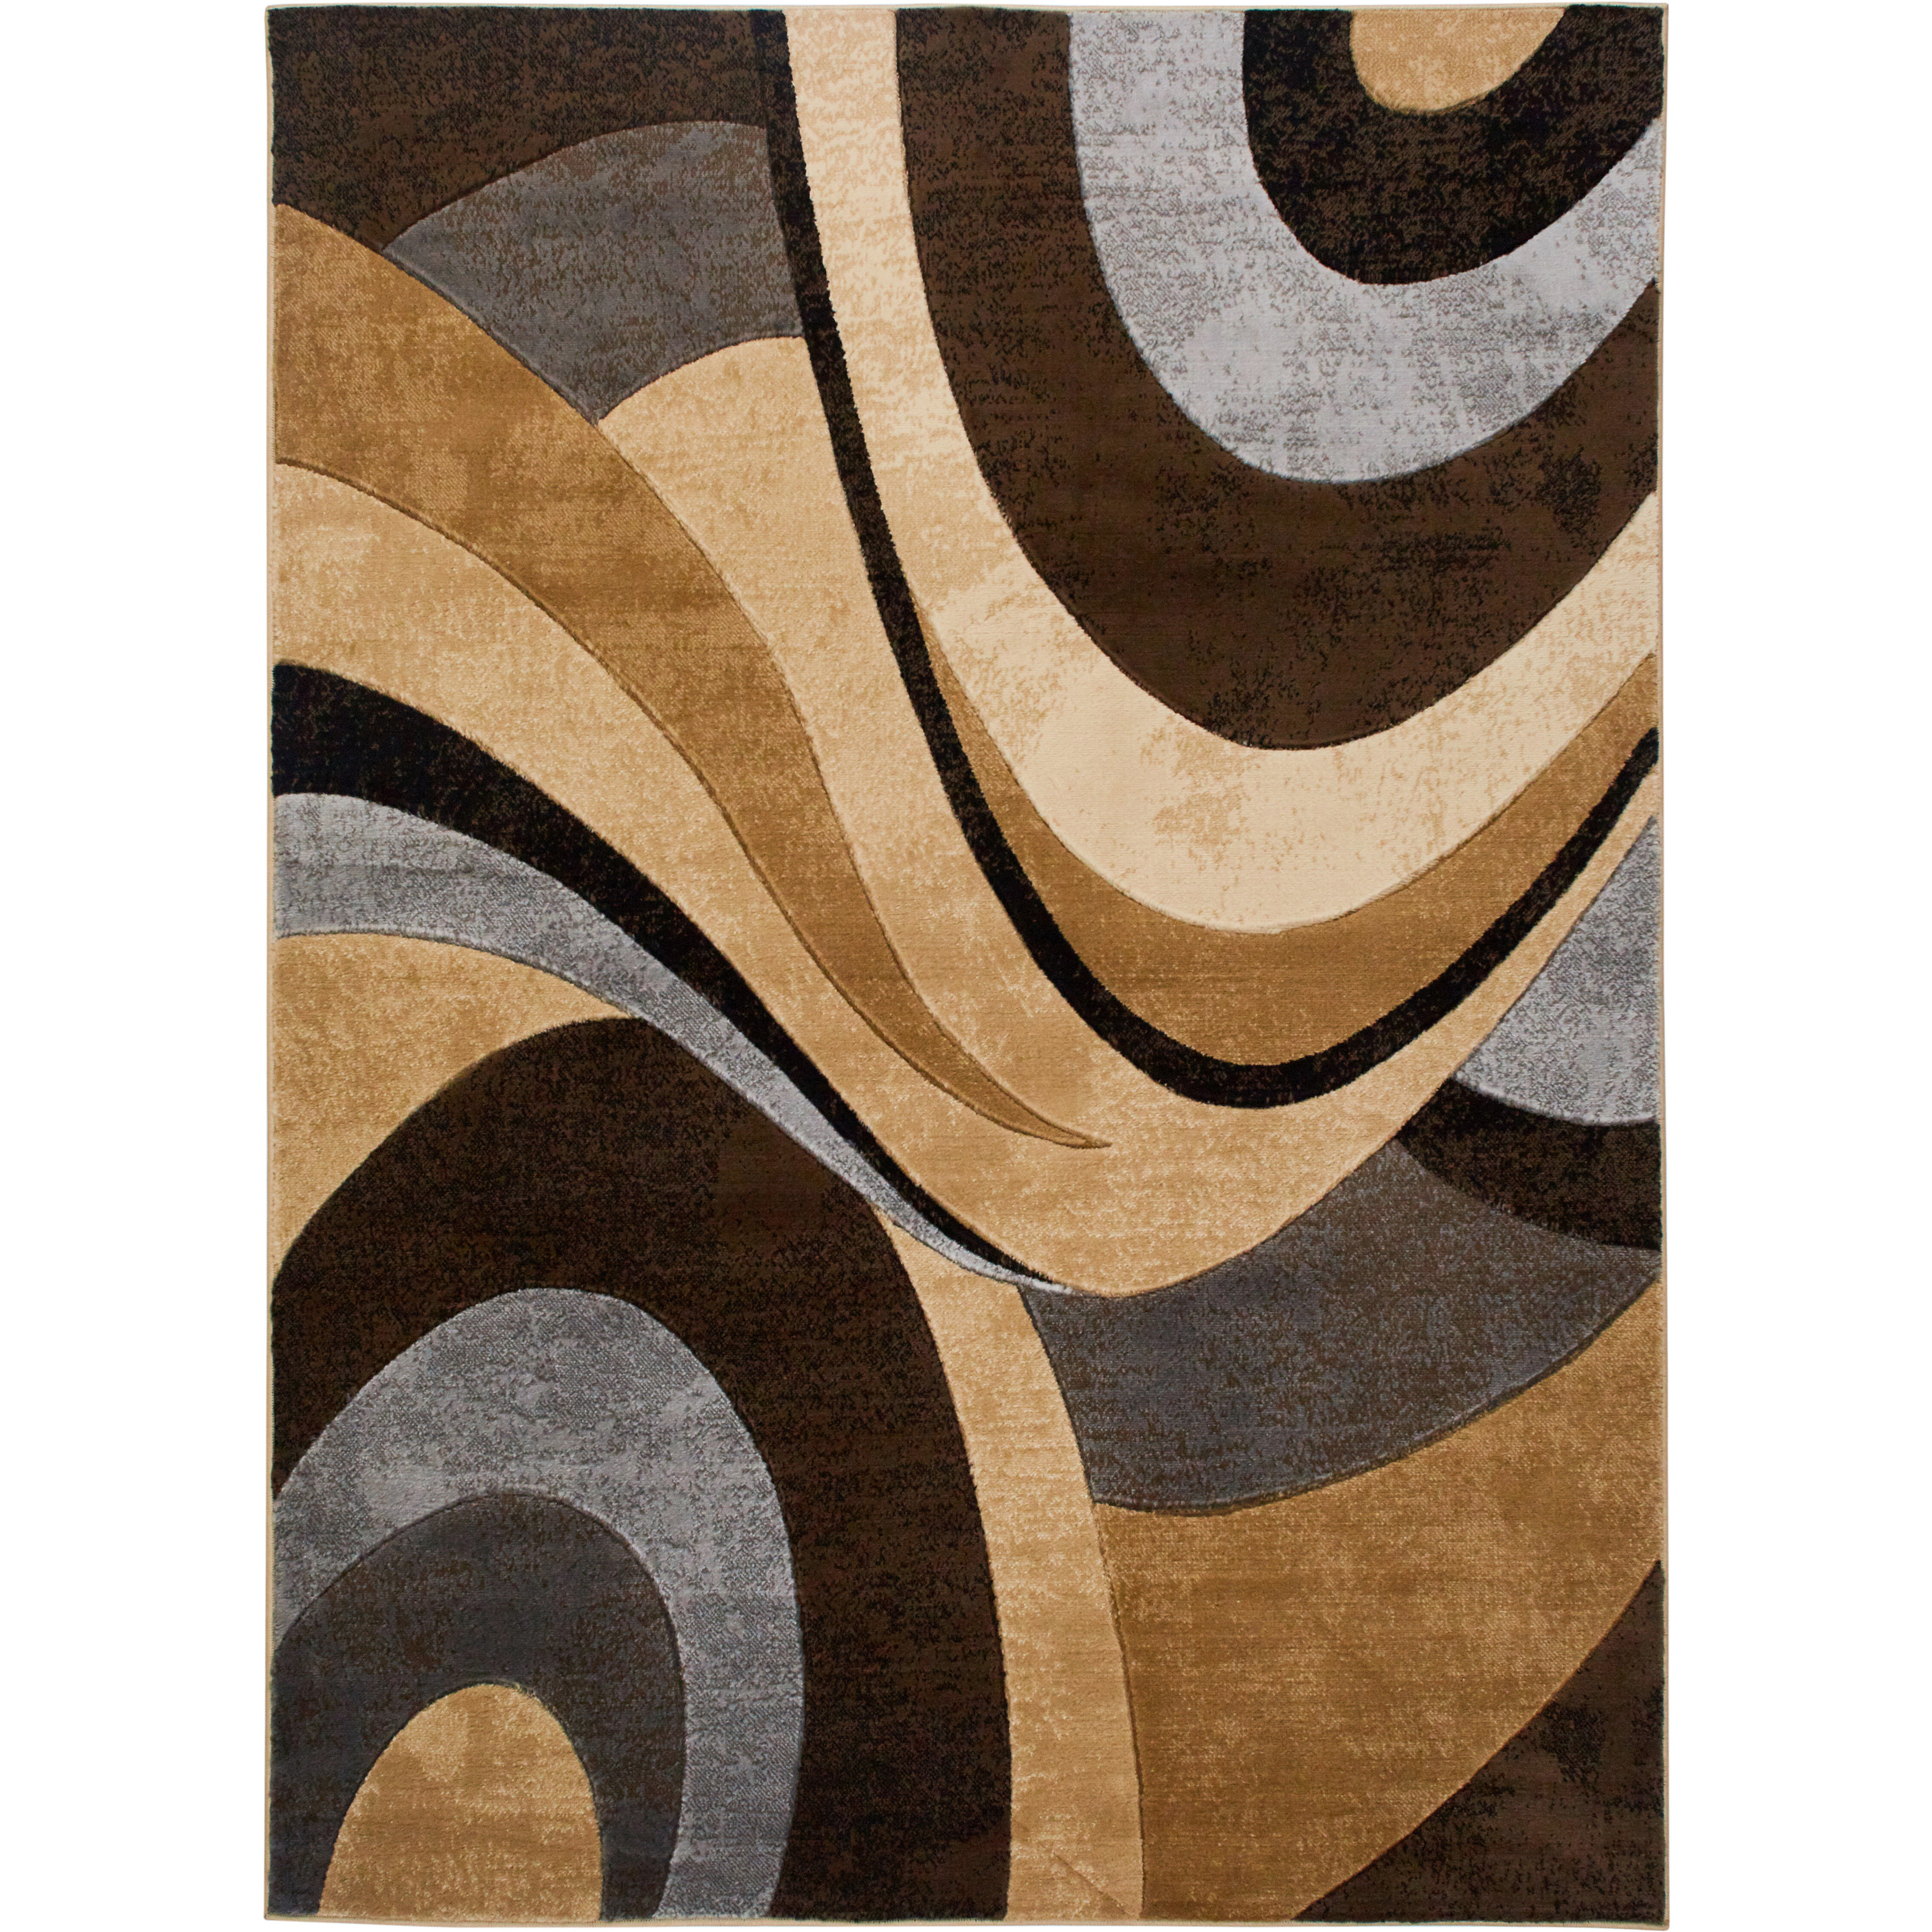 Abstract Brown Tan Area Rugs You Ll Love In 2021 Wayfair